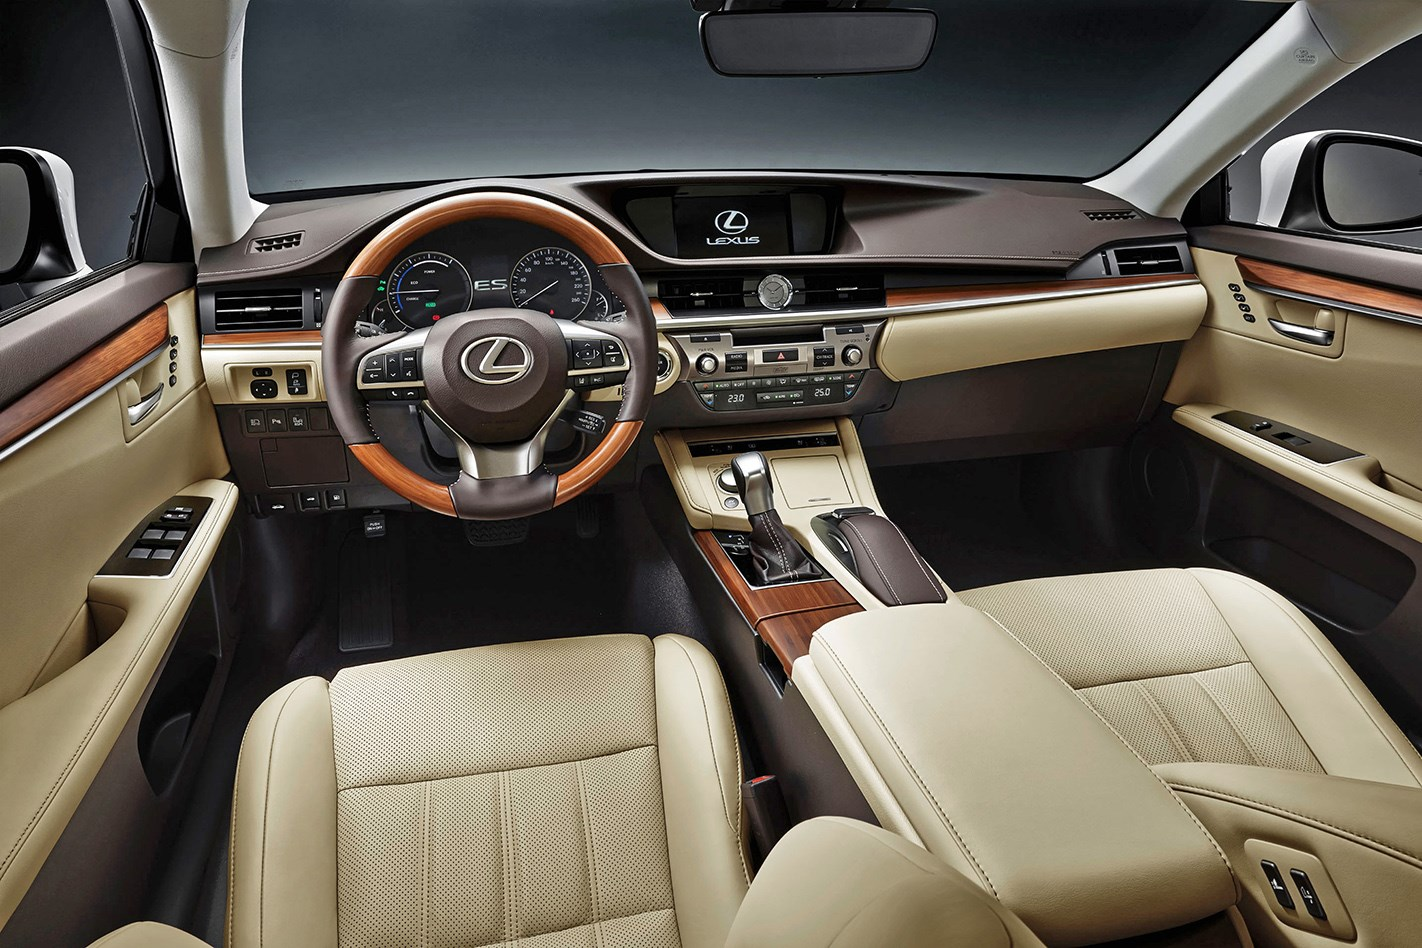 car interior india reviews imageresizer lexus drive ashx autocarindia test autocar price com lexusesfrontstatic n review hybrid specifications and